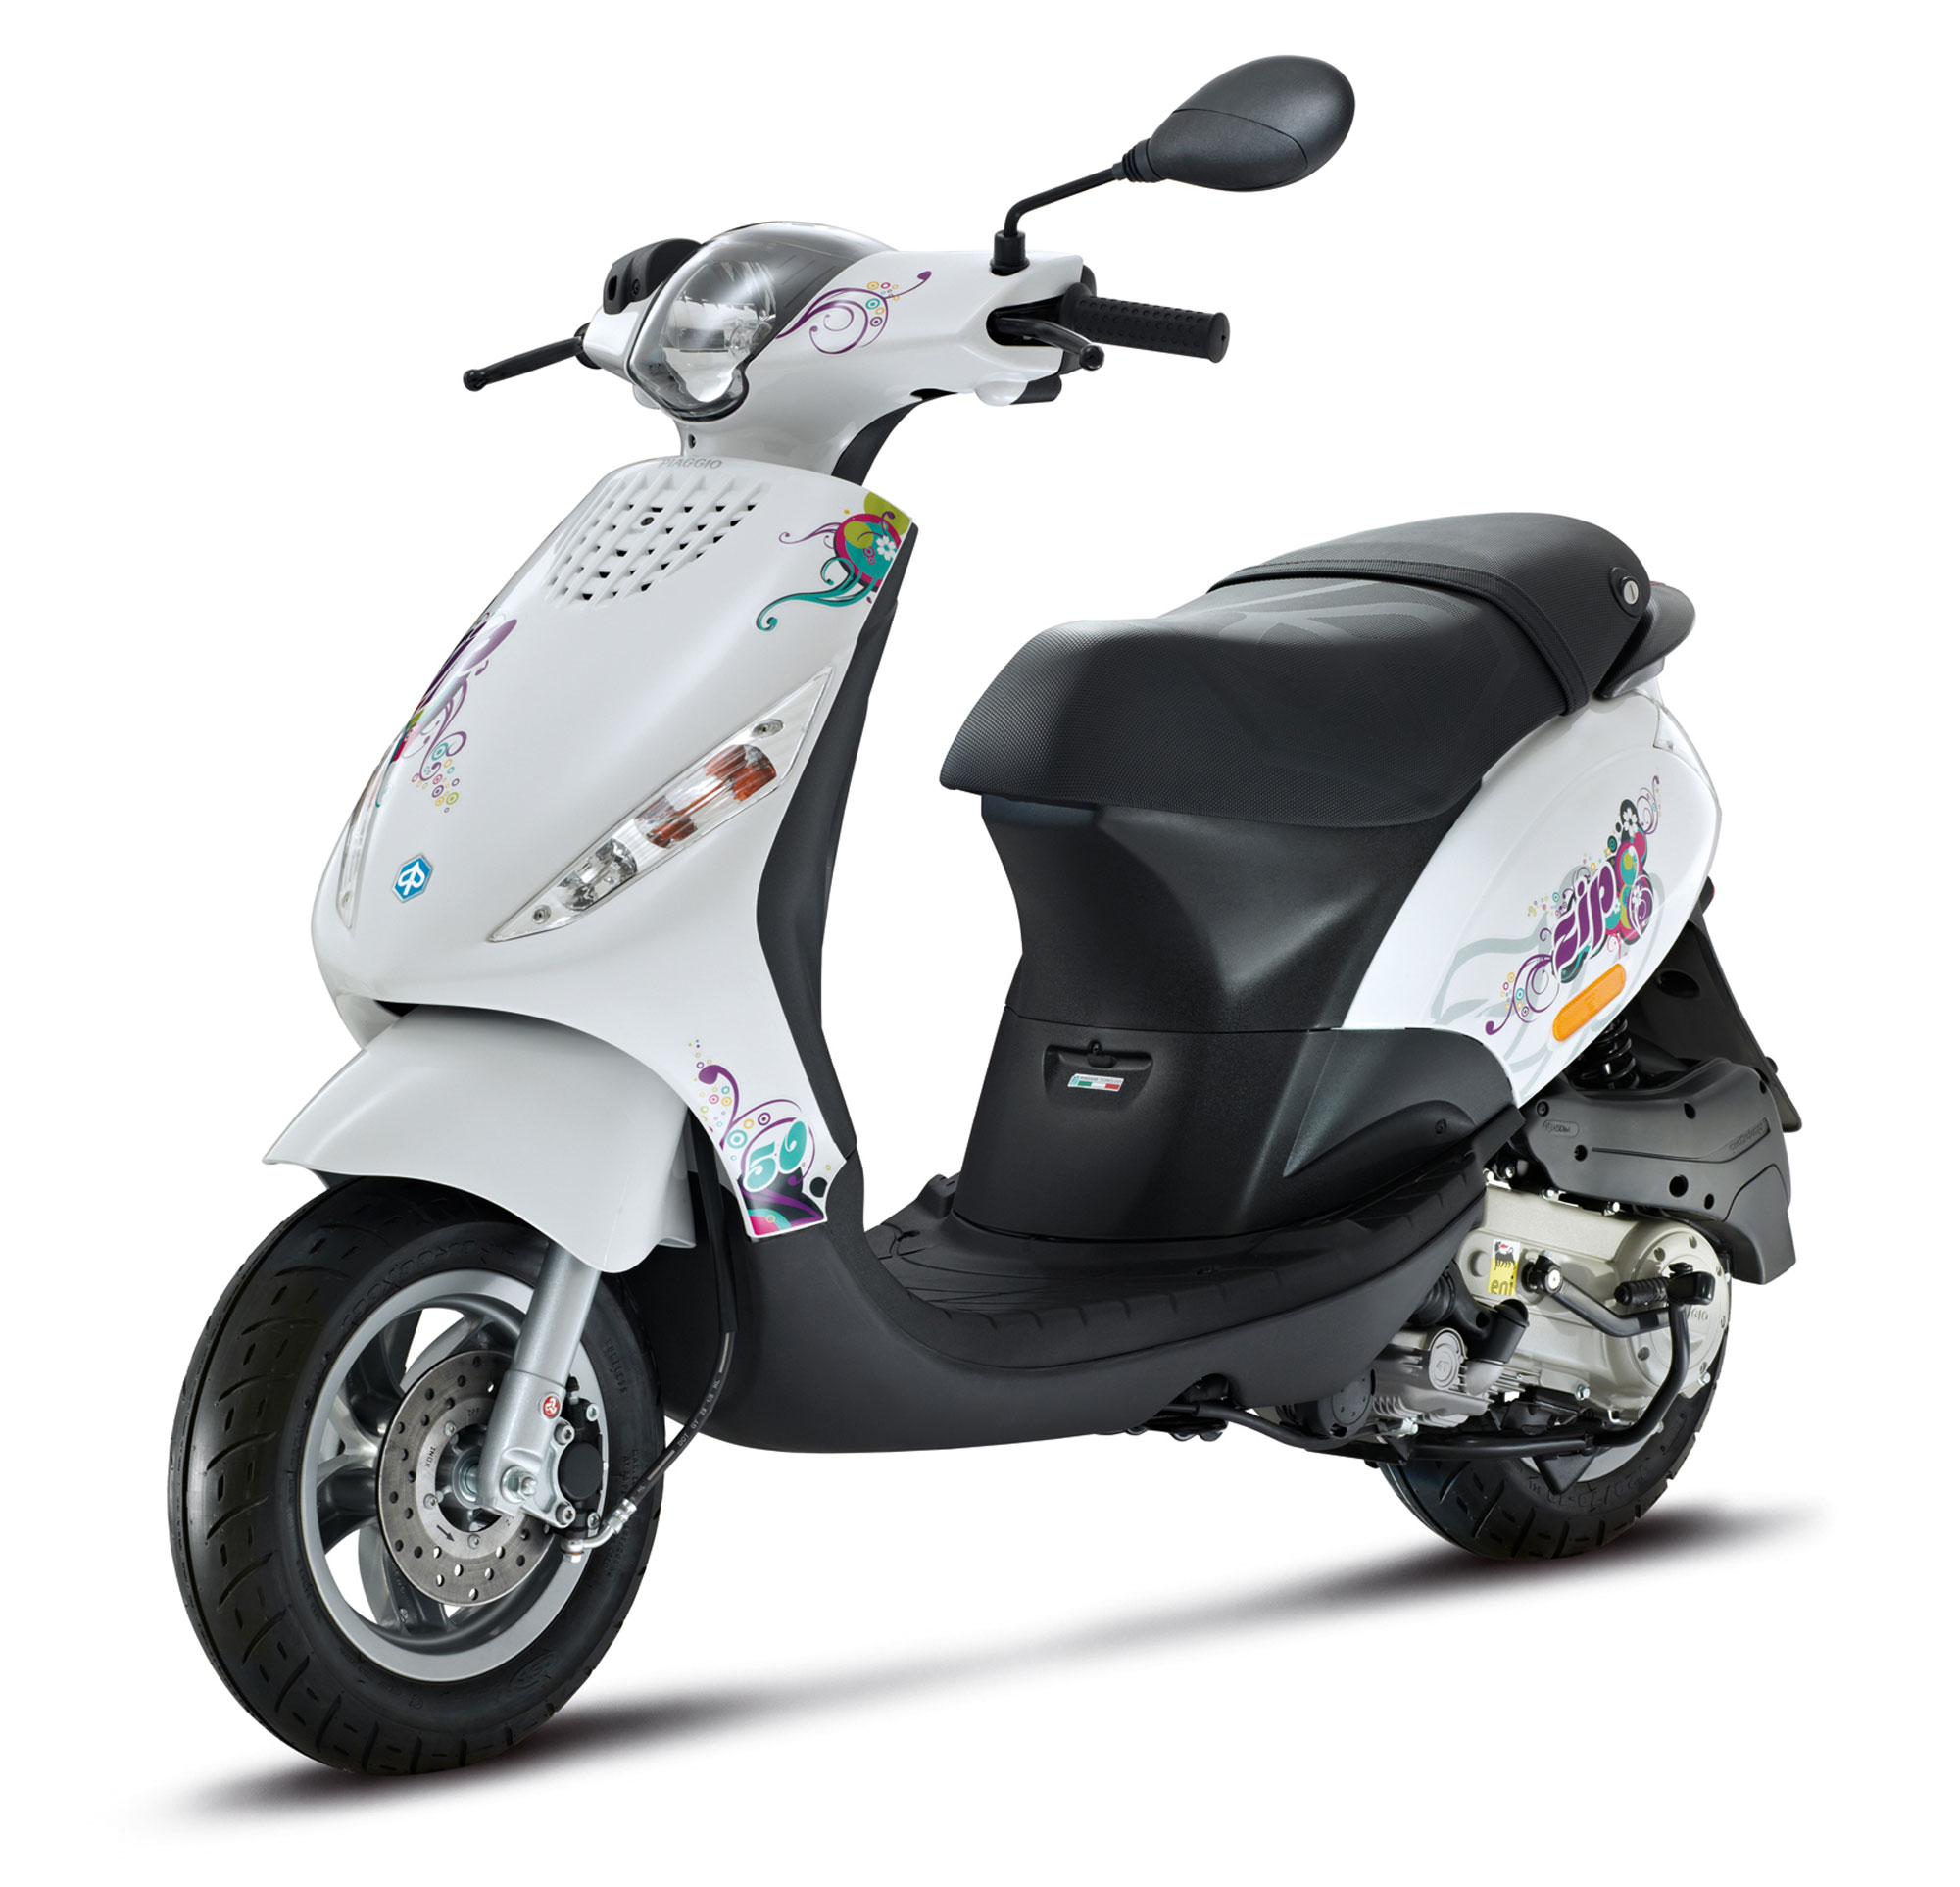 piaggio zip 50 special edition 2 stroke specs 2011 2012 2013 autoevolution. Black Bedroom Furniture Sets. Home Design Ideas